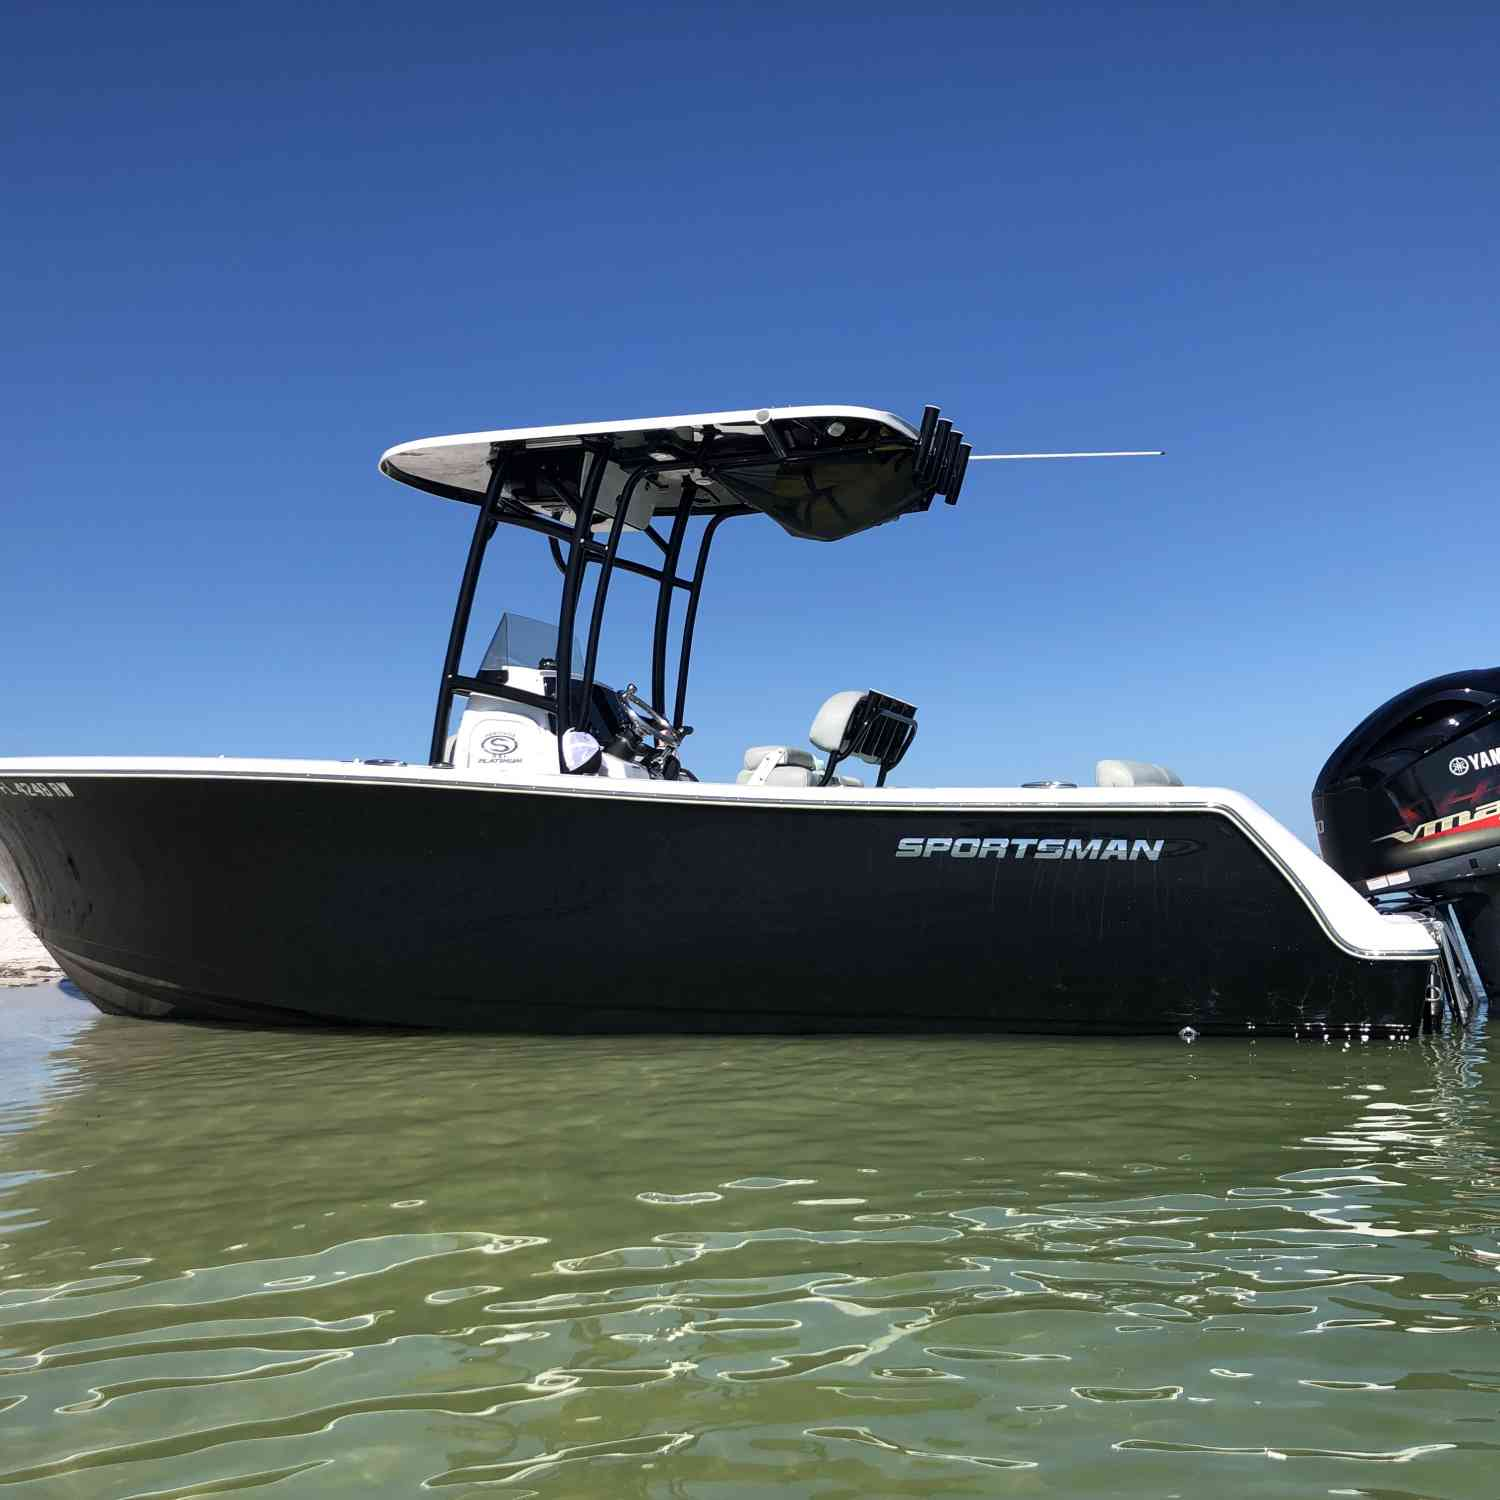 Title: 2019 Sportsman 231 - On board their Sportsman Heritage 231 Center Console - Location: Naples, Florida. Participating in the Photo Contest #SportsmanAugust2020